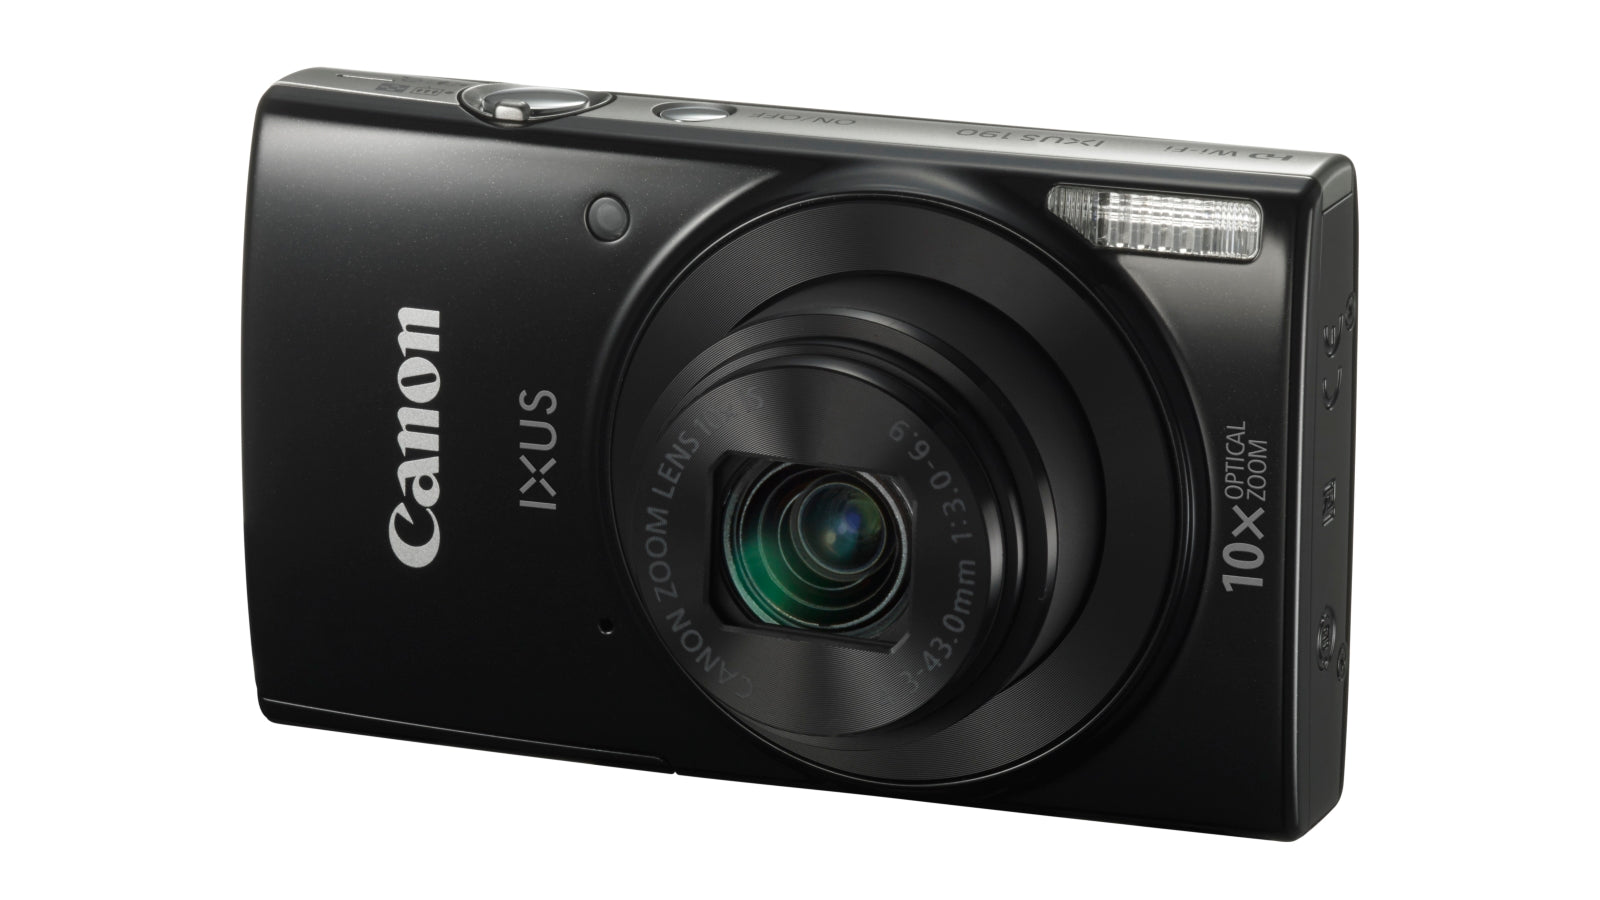 Canon IXUS 190 Ultra Slim Digital Camera - Black